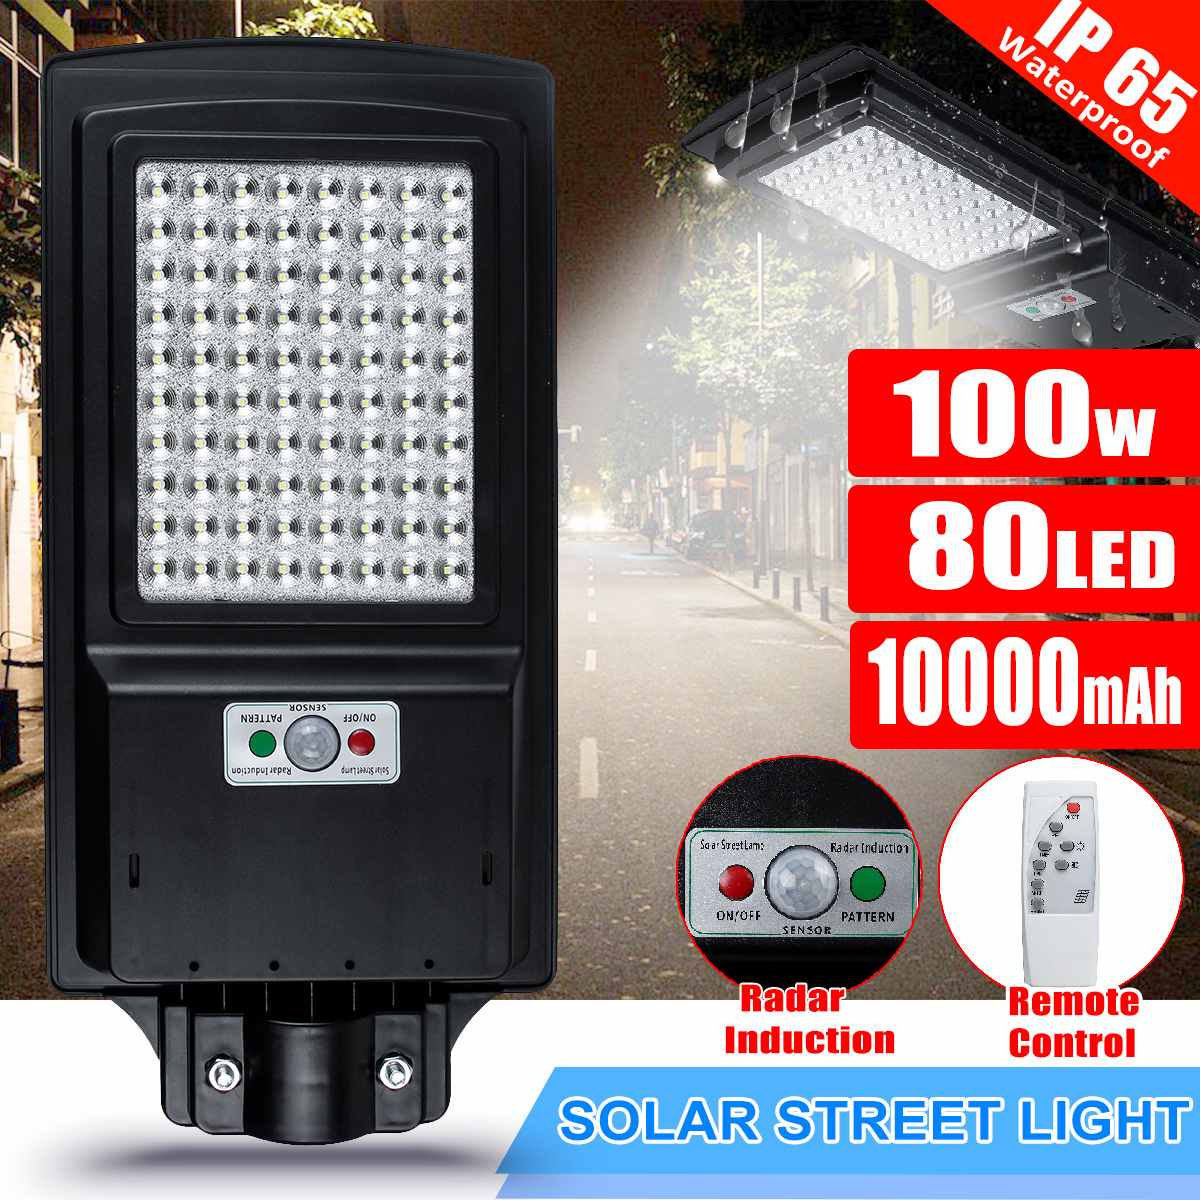 100W 80 LED Wall Lamp IP65 Solar Street Light Radar Motion 2 In 1 Constantly Bright & Induction Solar Sensor Remote Control